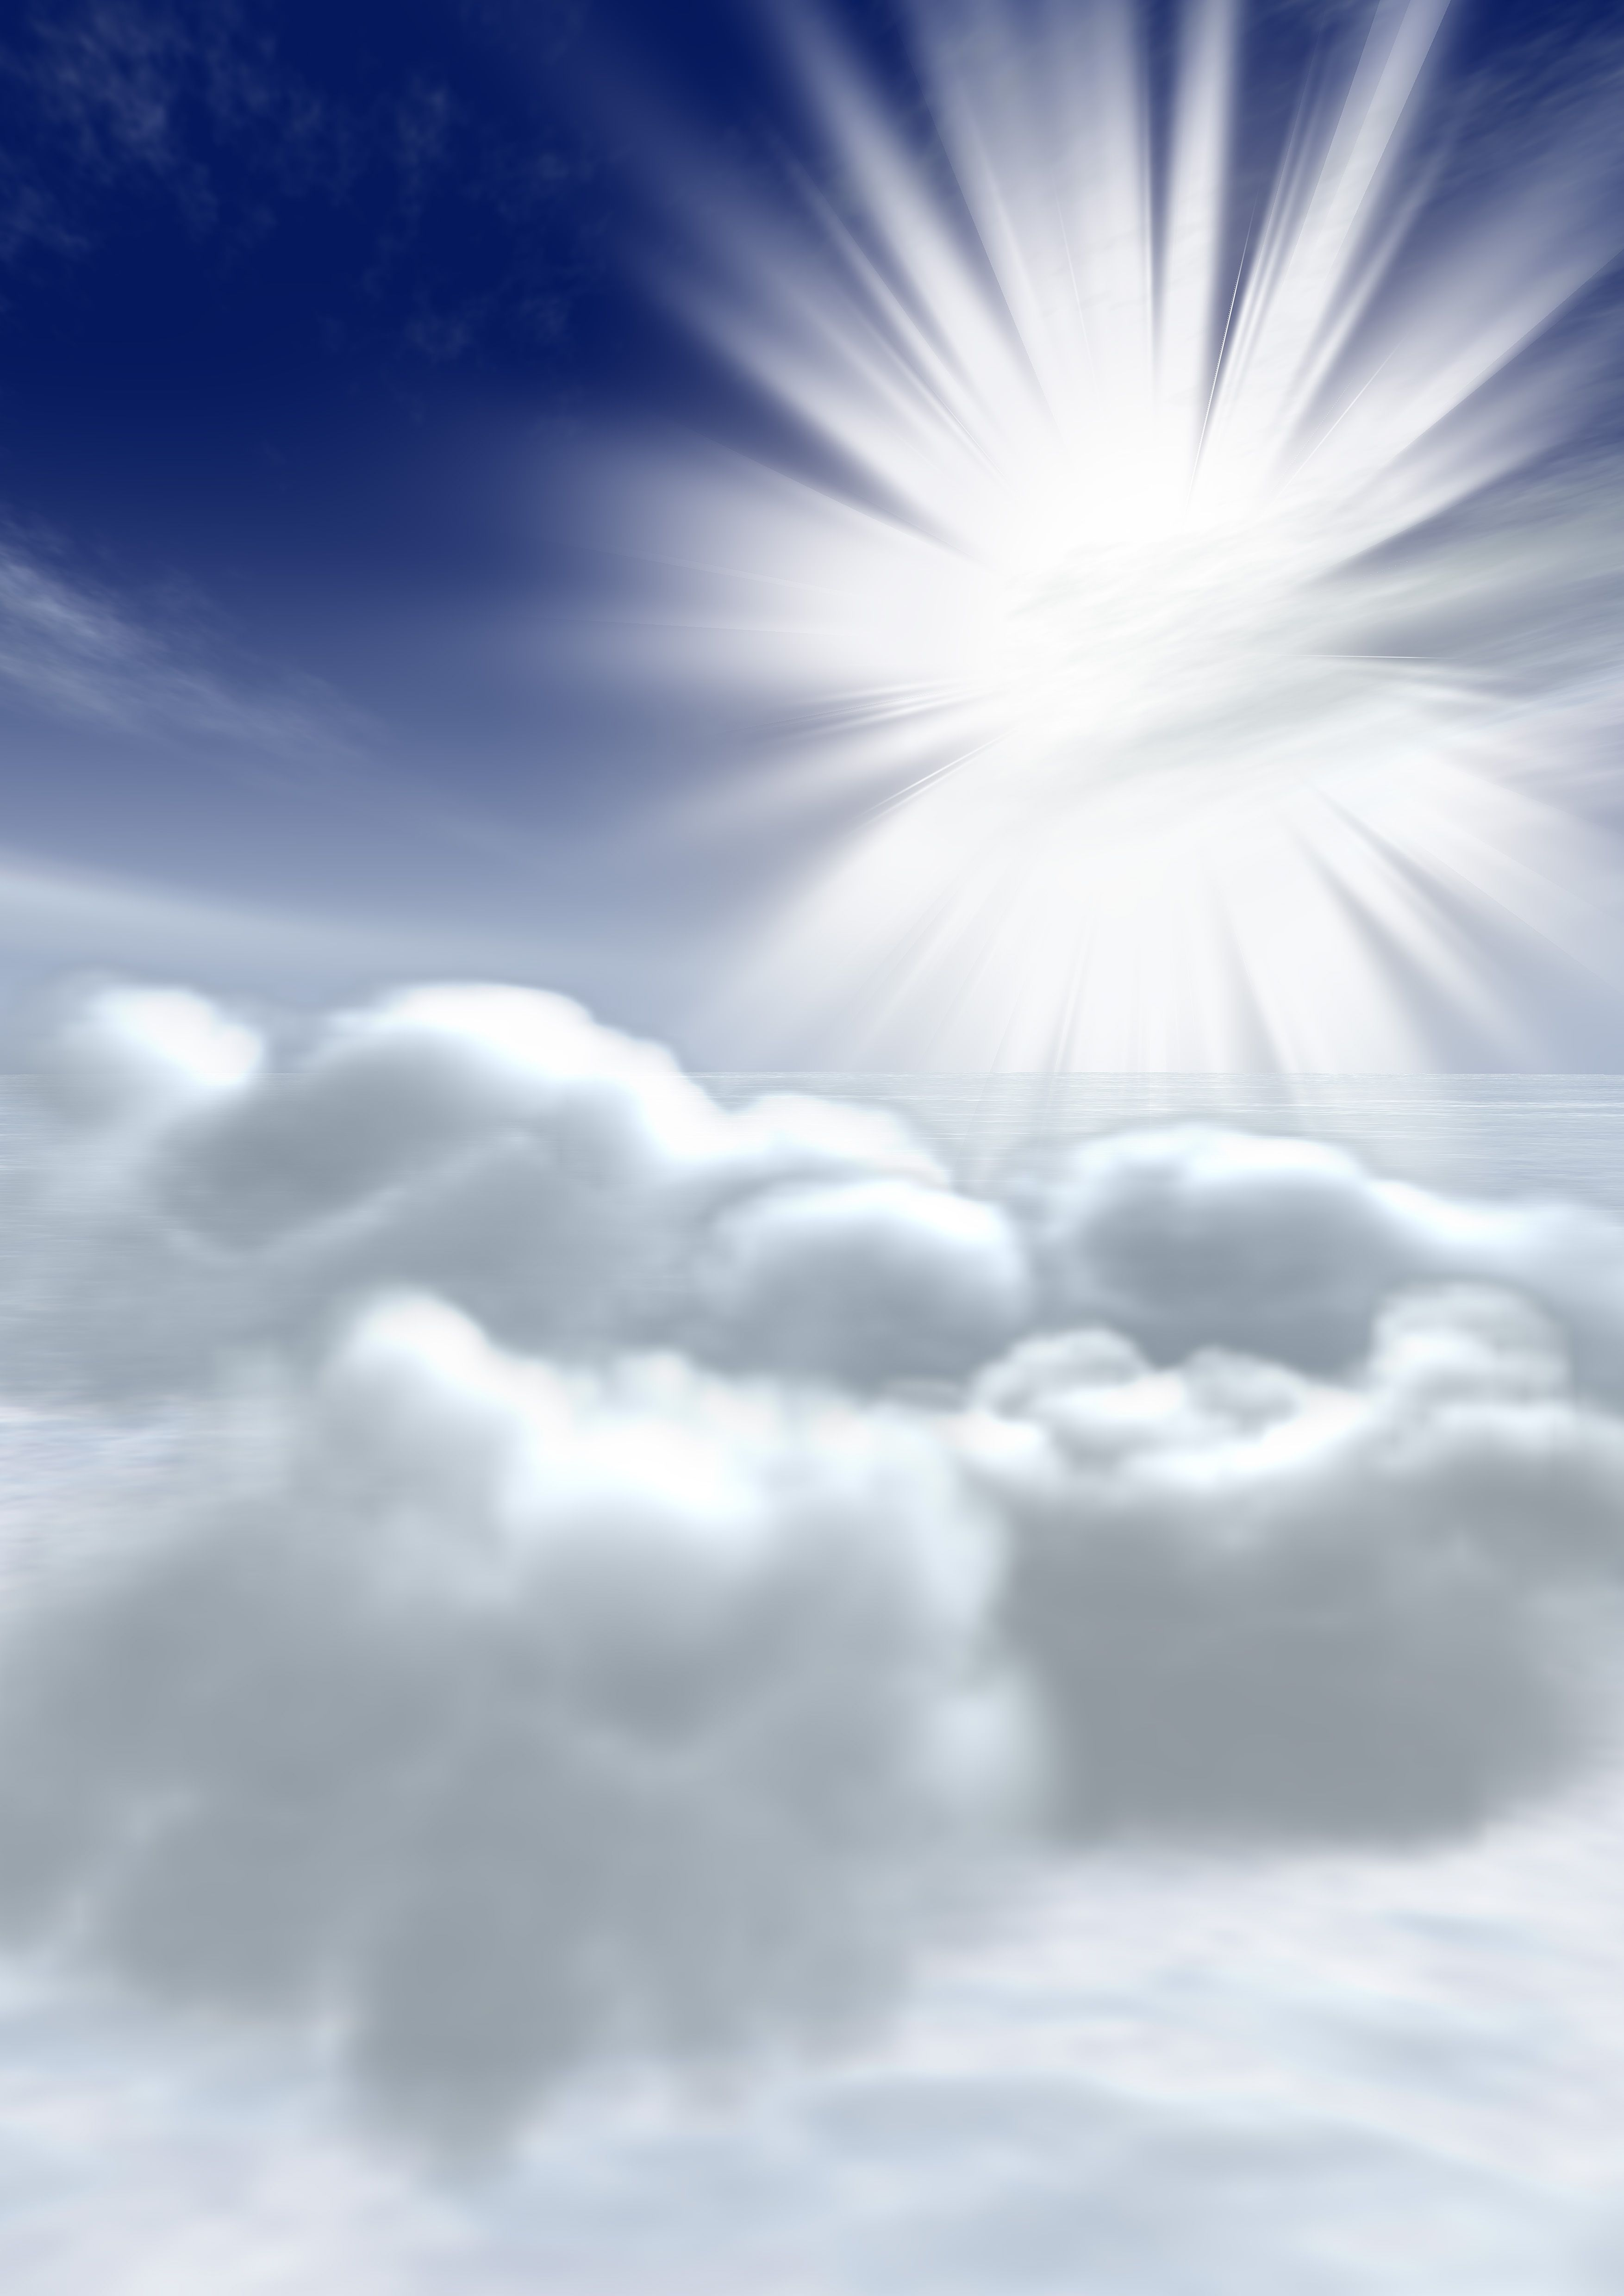 Gallery For gt Funeral Programs Backgrounds 3508x4961